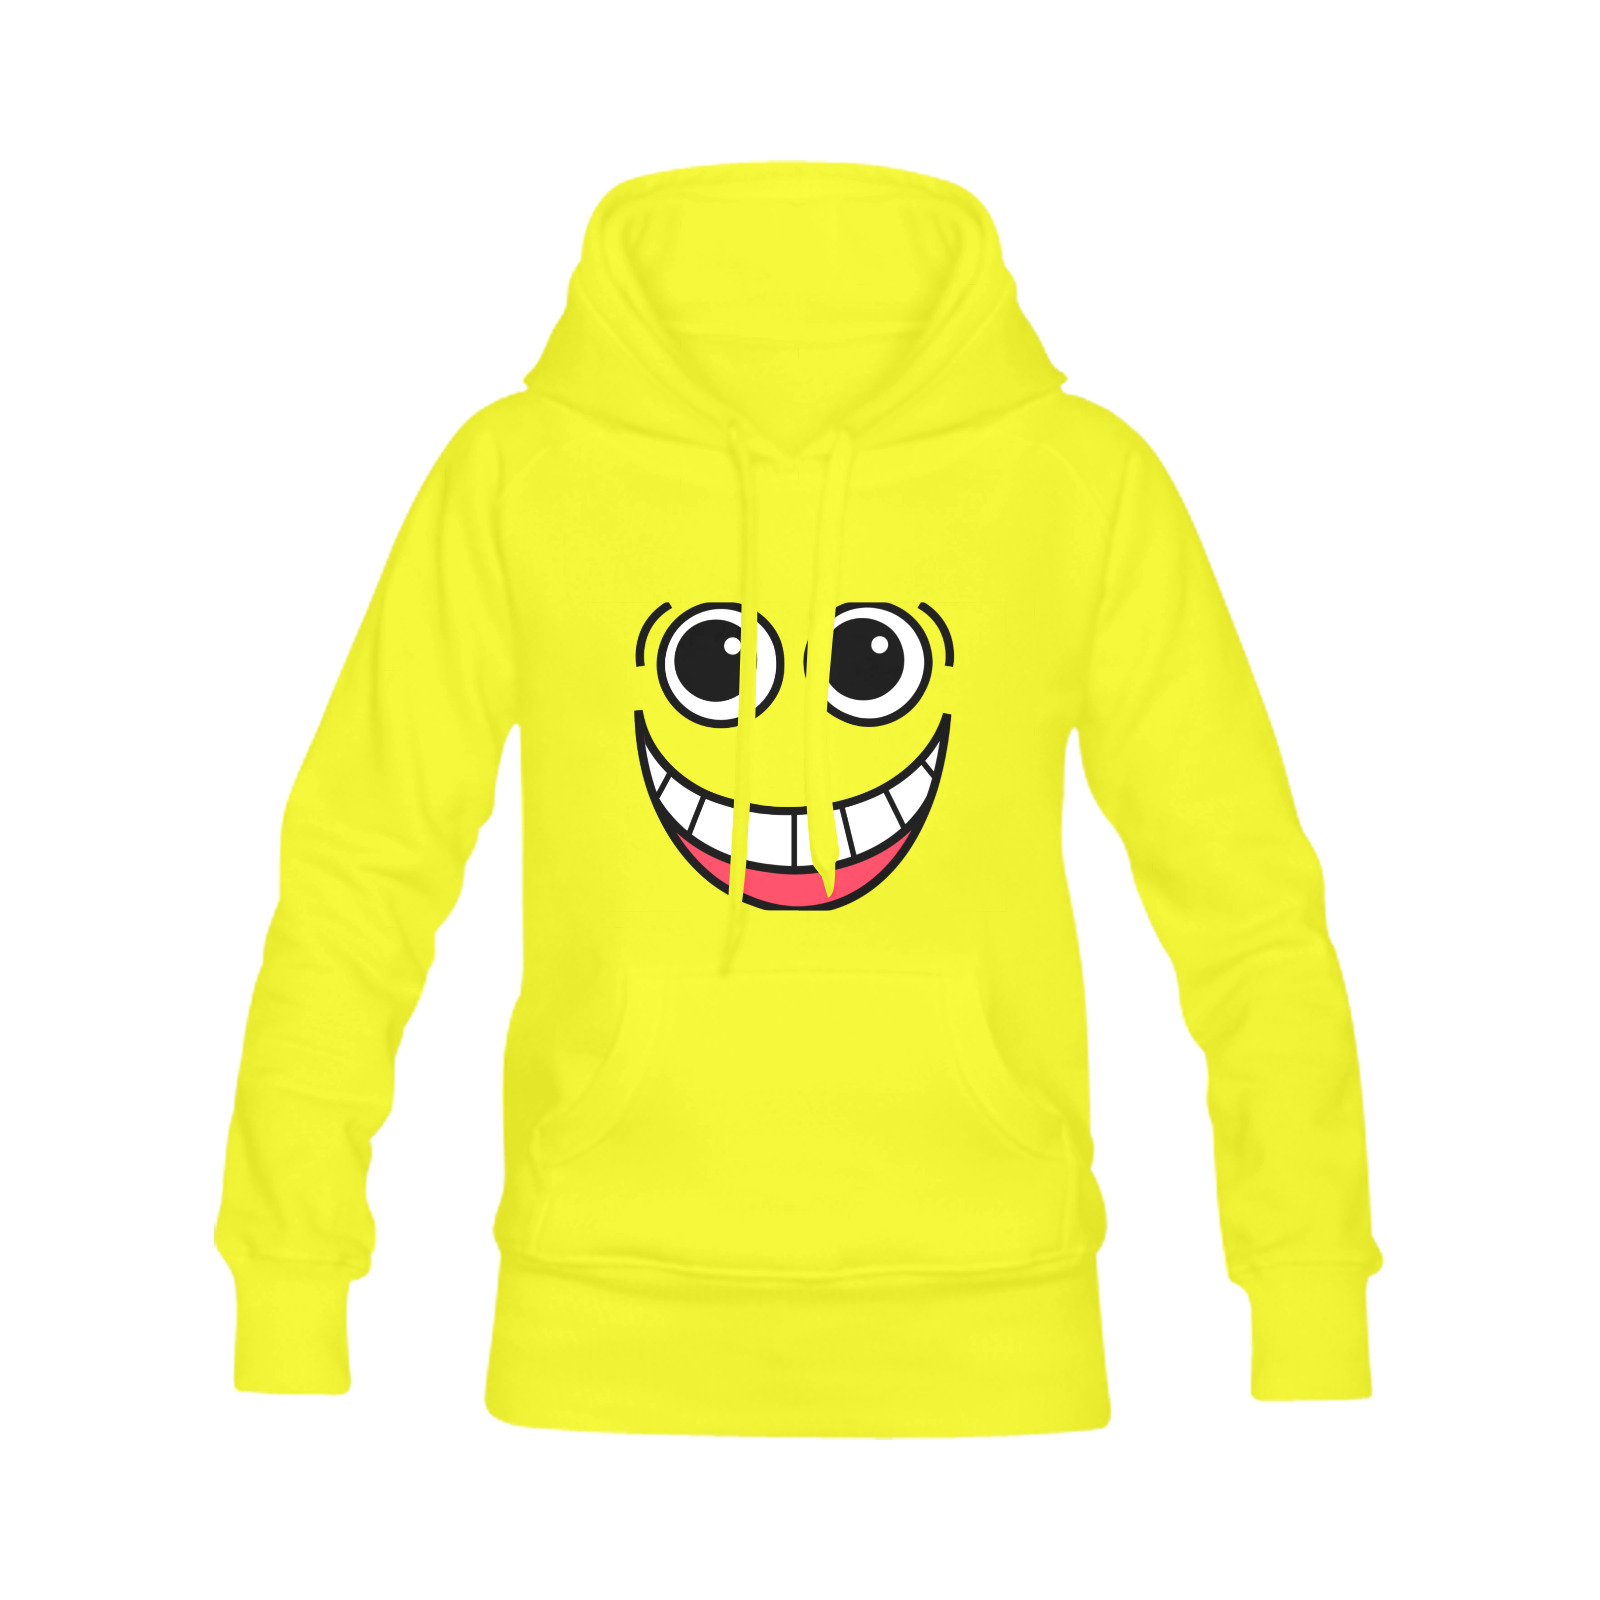 Happy Laughing Funny Comic Cartoon Face Men's Classic Hoodie (Remake) (Model H10)